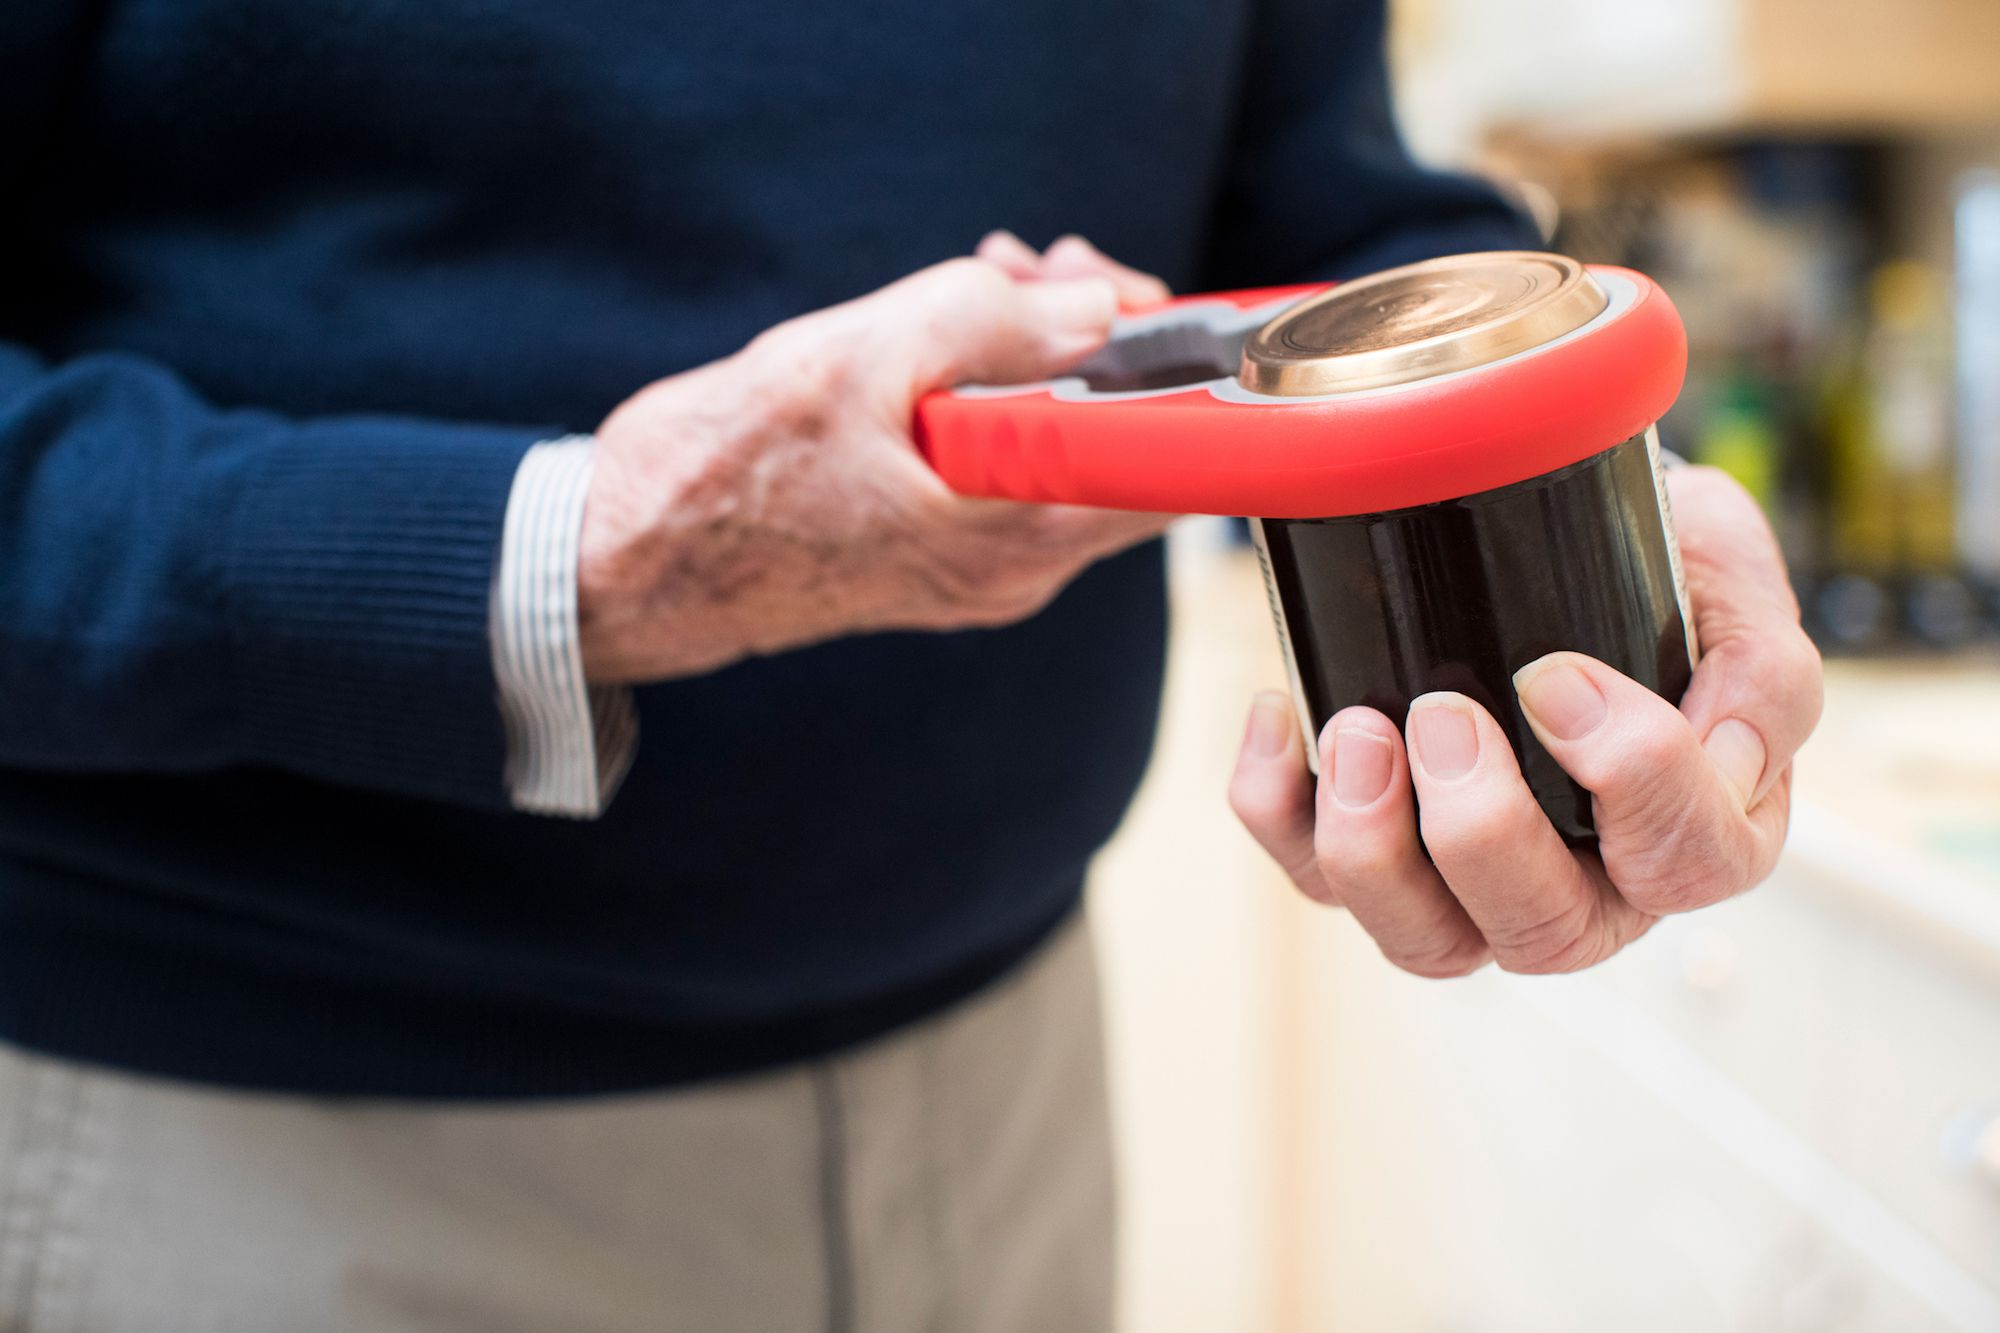 The Best Gifts for People With Arthritis for 2019